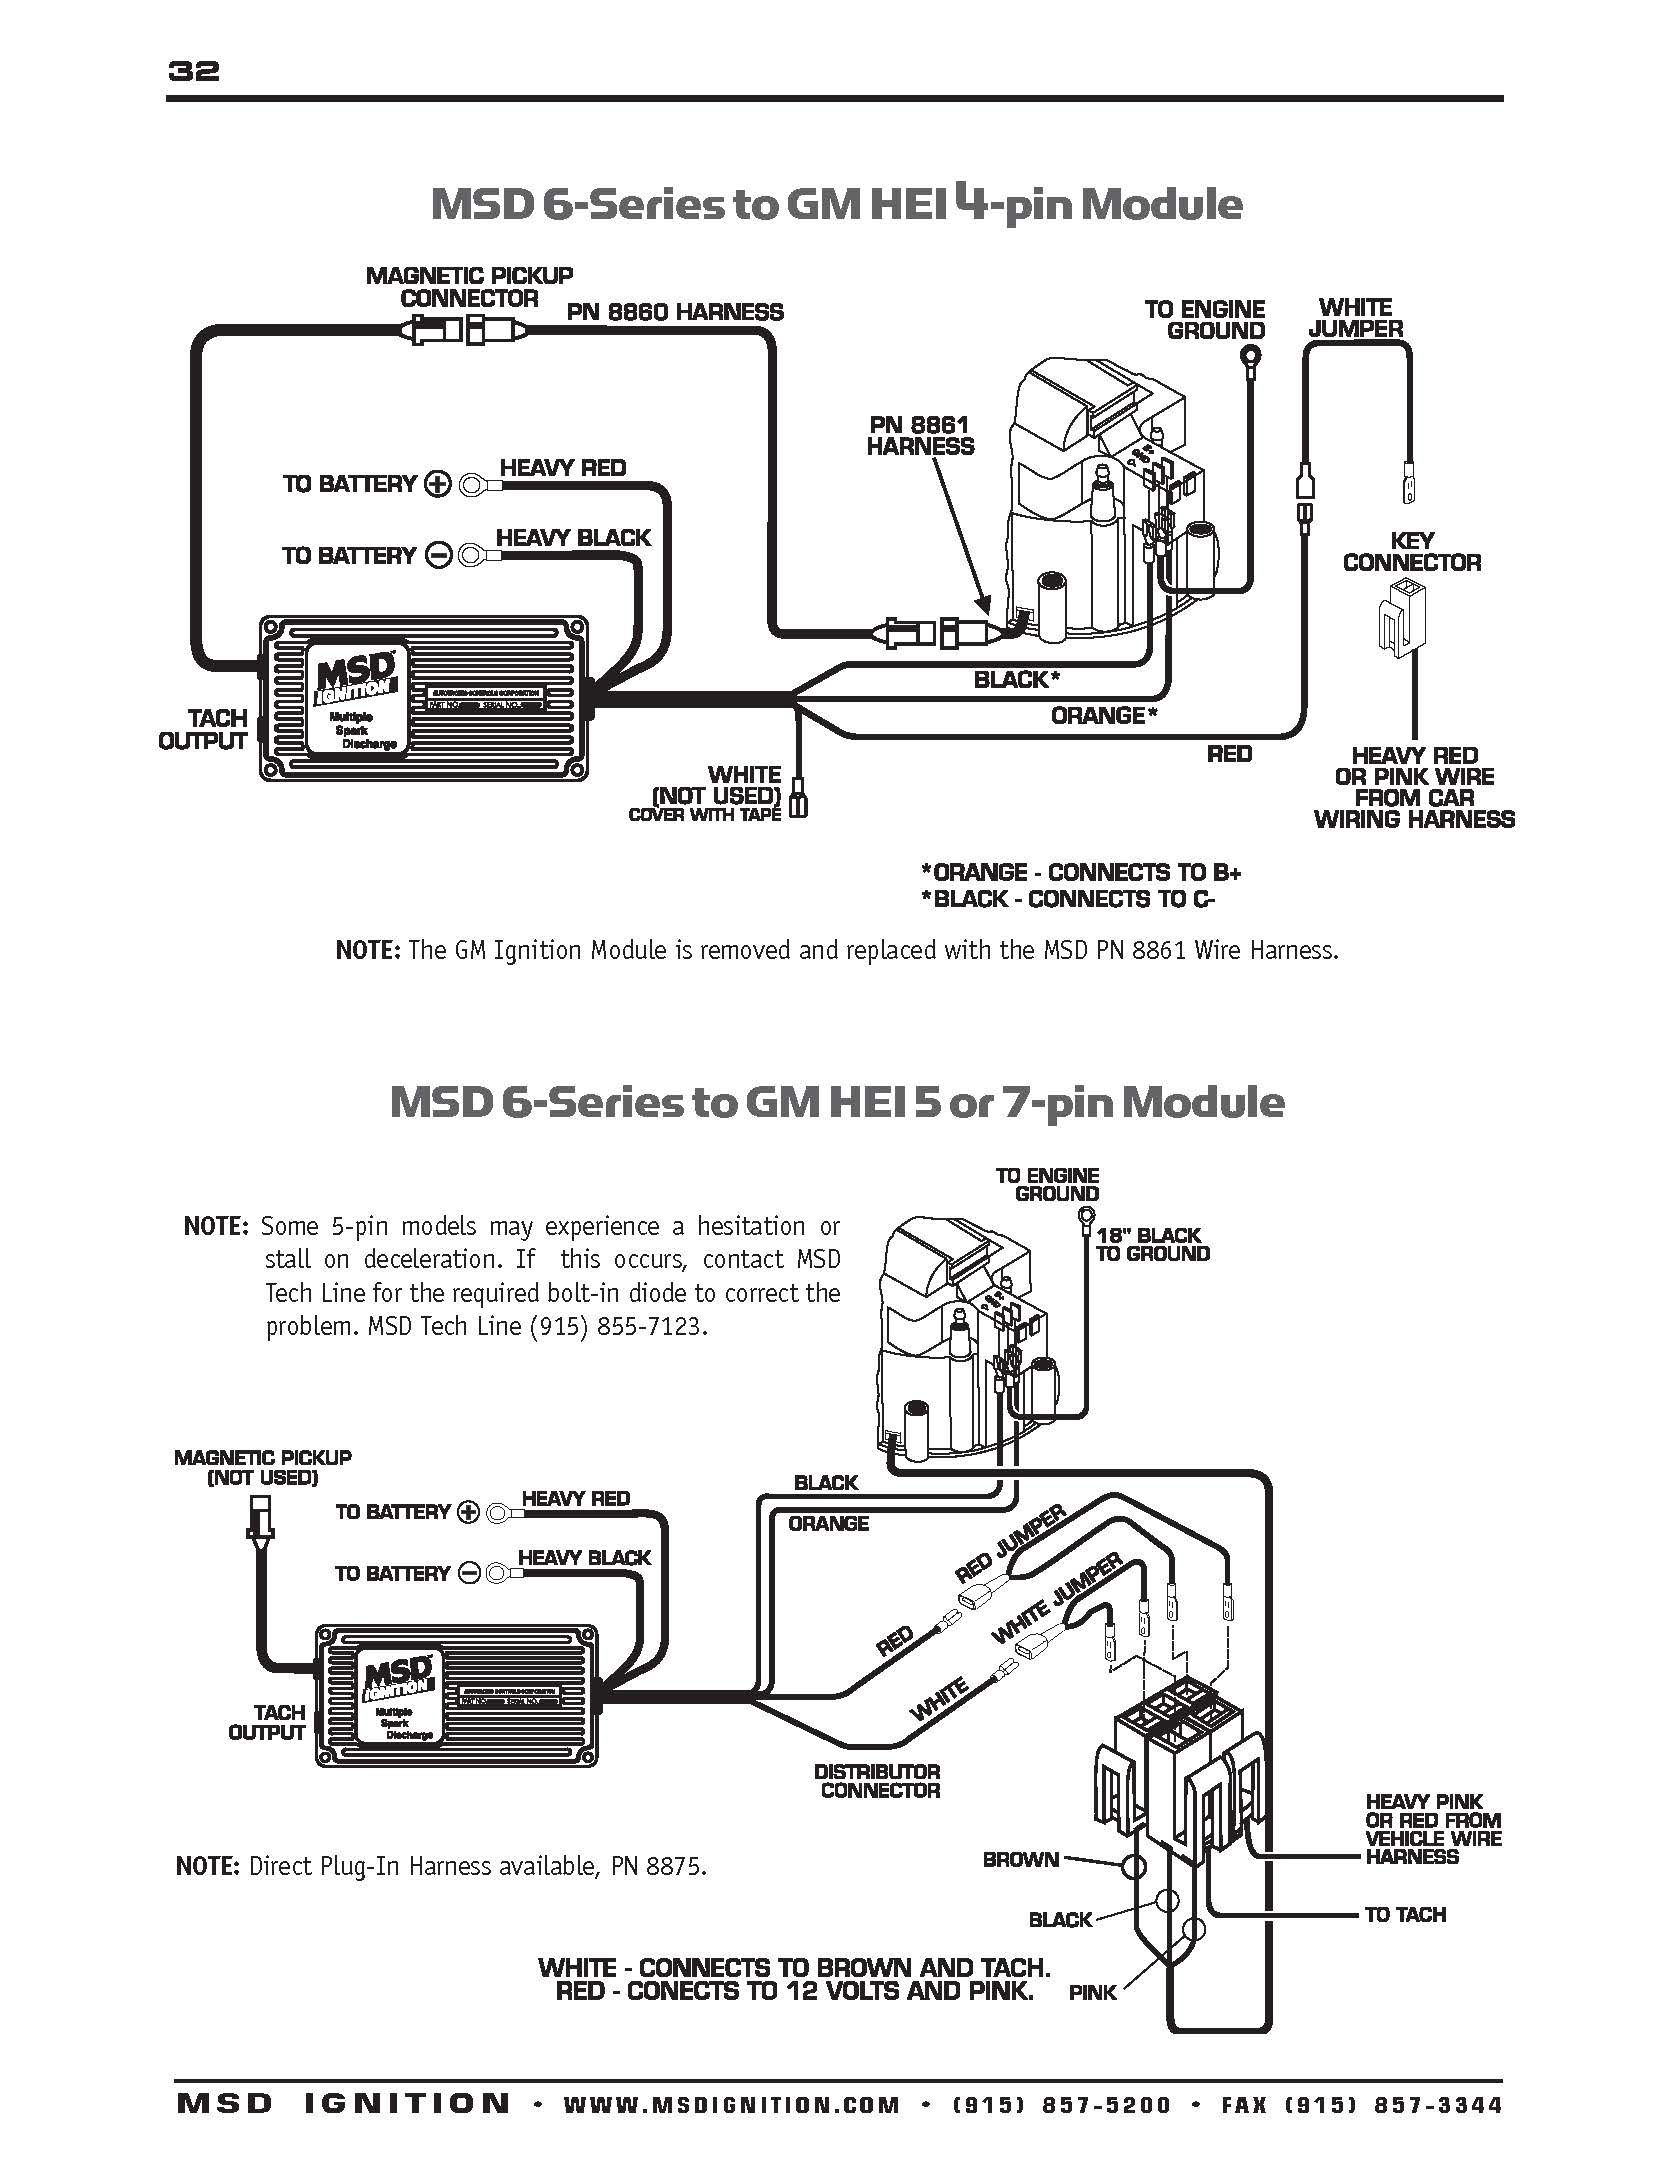 Msd Ignition Wiring Diagram Chevy   Manual E-Books - Msd Ignition Wiring Diagram Chevy